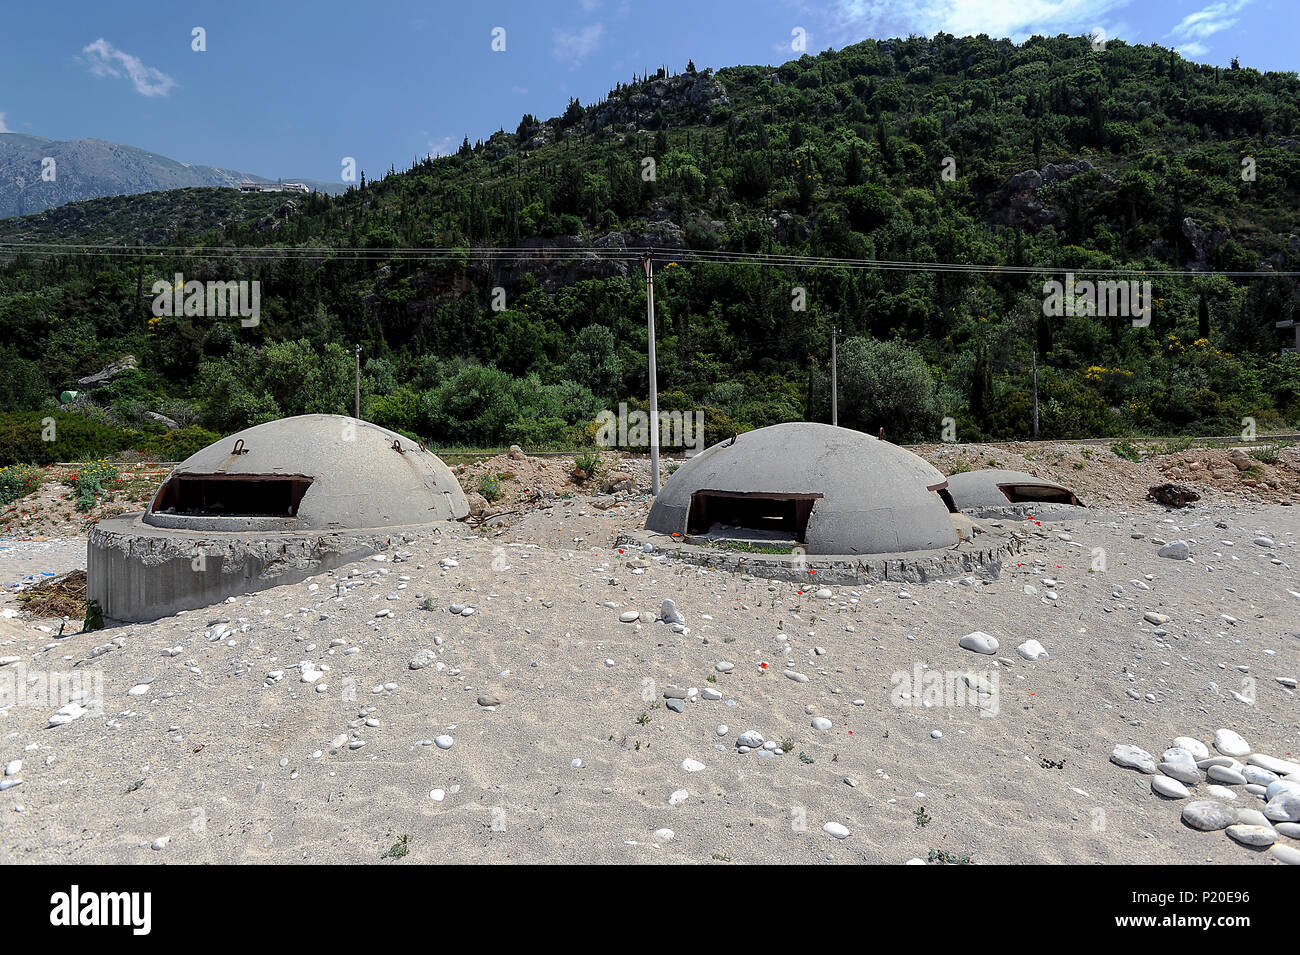 Dhermi, Albania, old bunker facilities from the 1970s on the beach - Stock Image